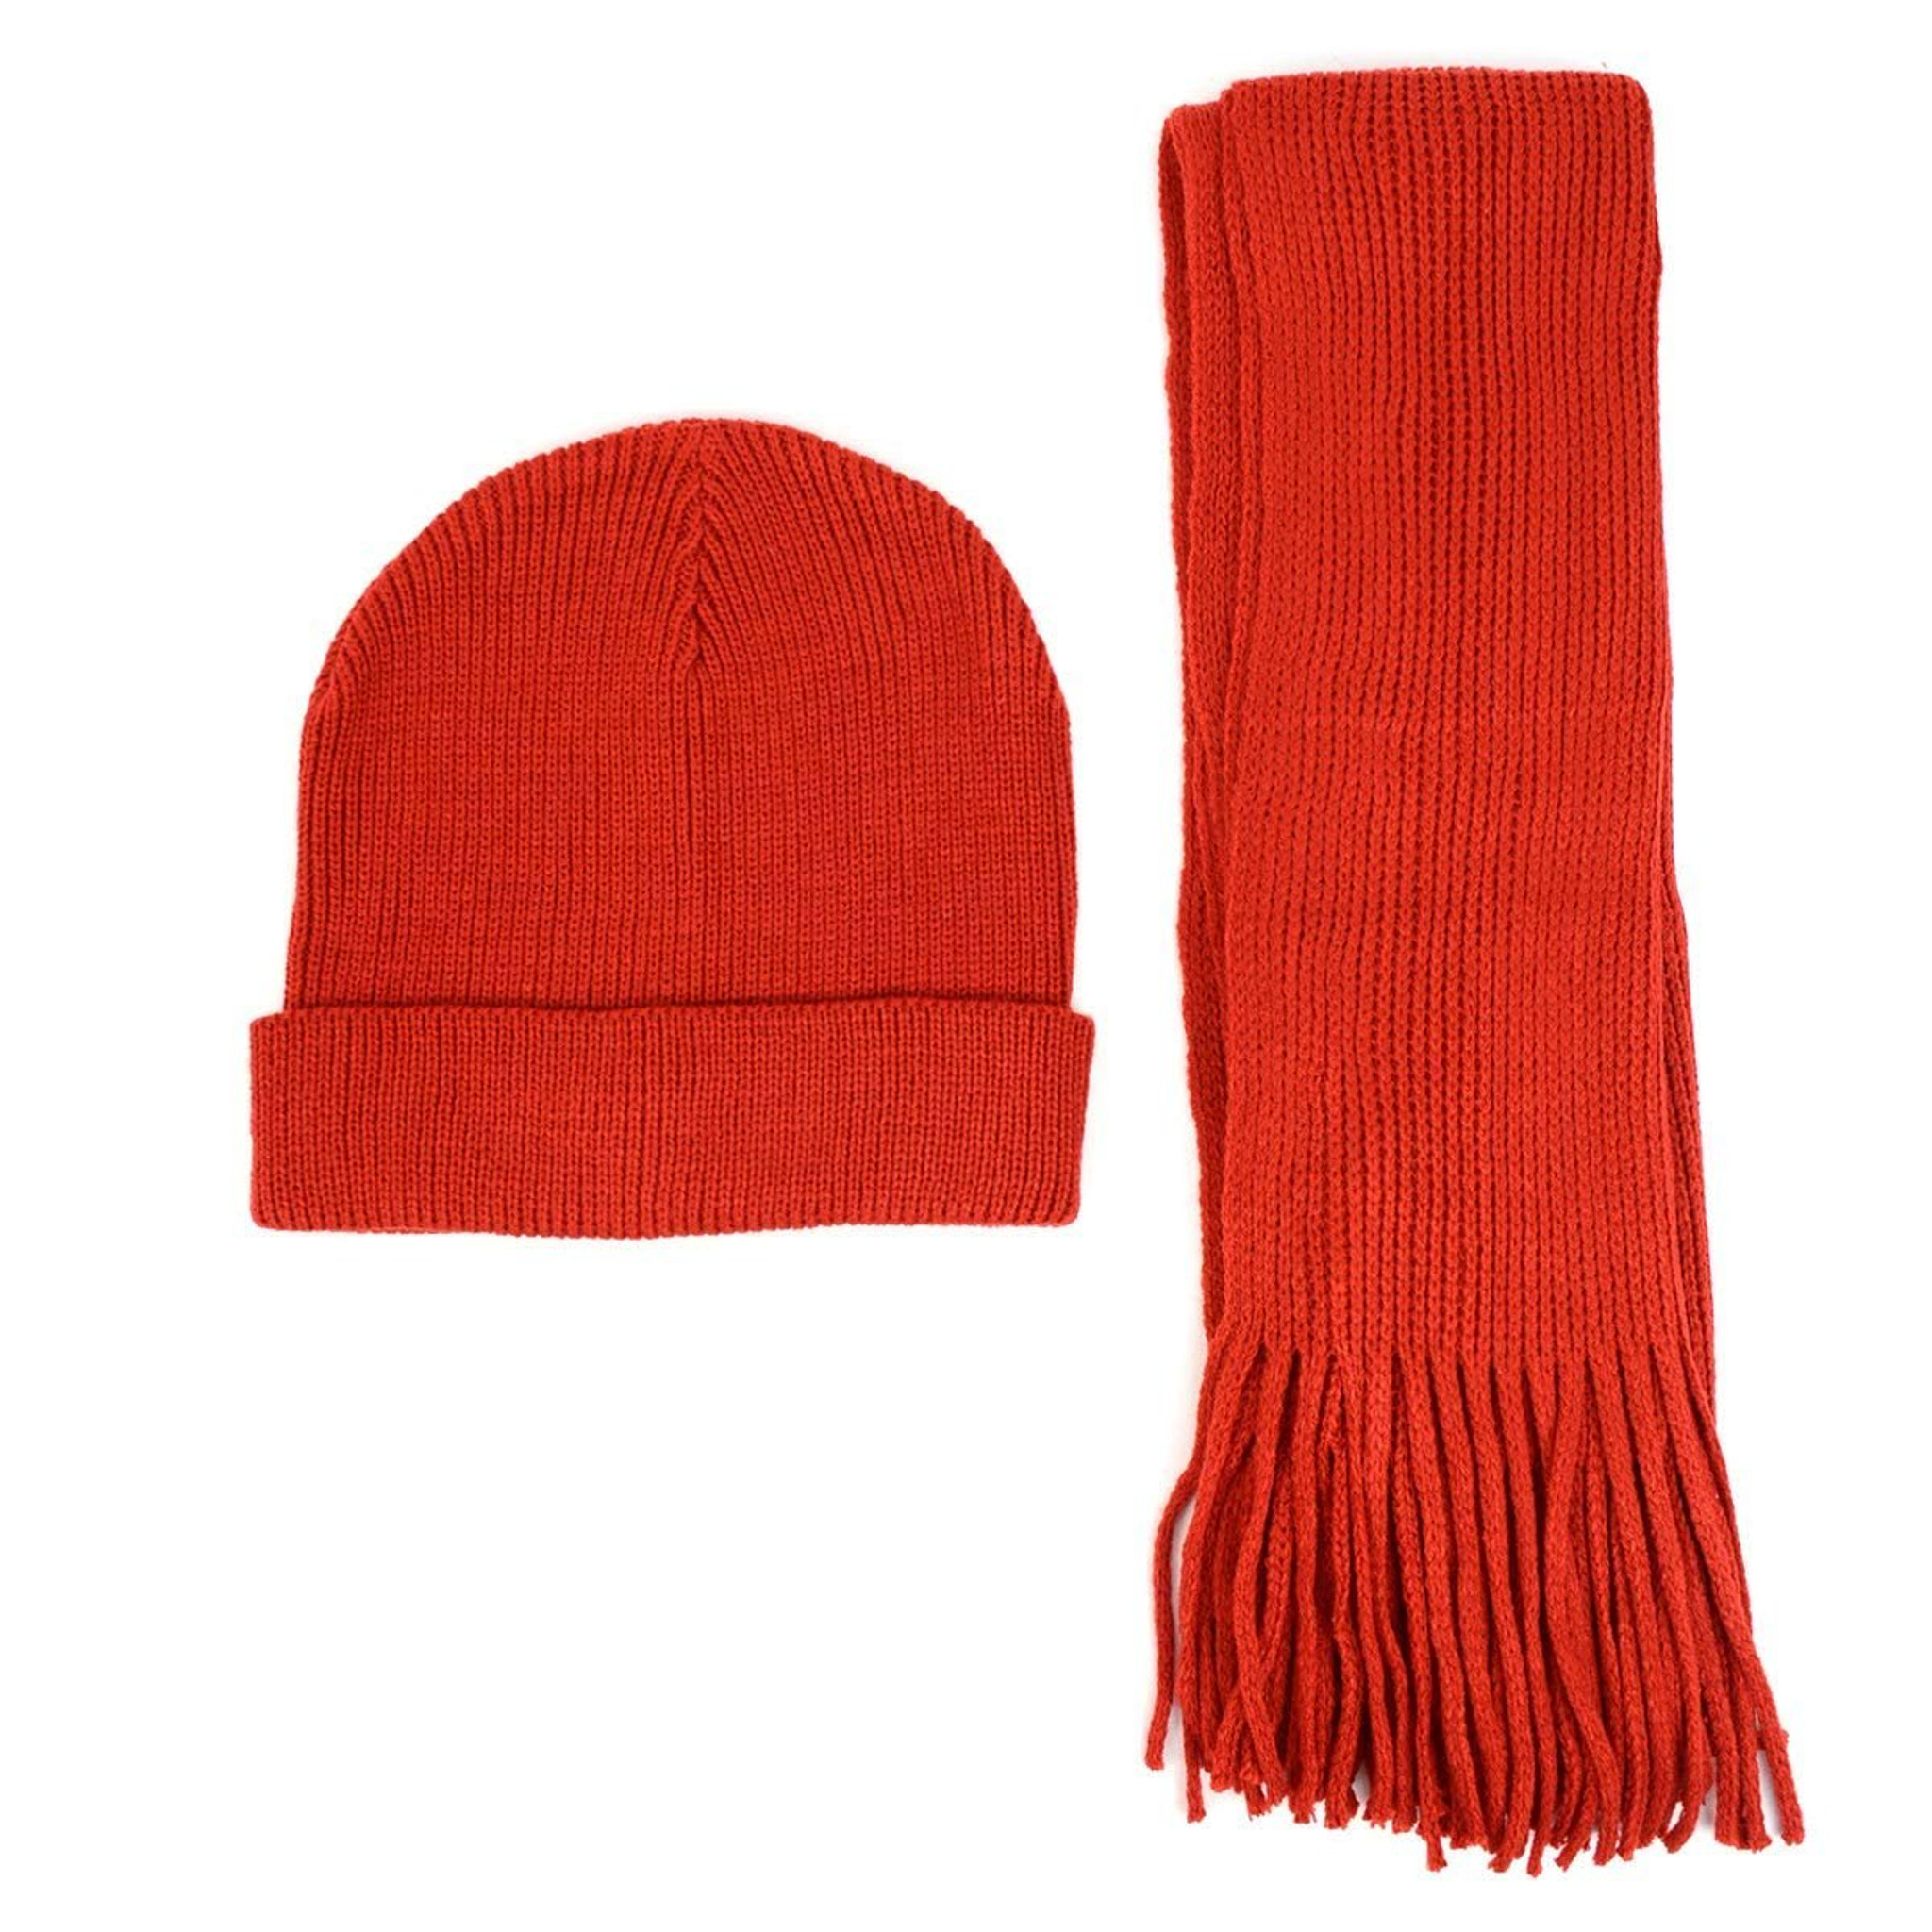 98521582c Men's Winter Knit Scarf and Beanie Hat Set Solid Red Fashionable & Warm